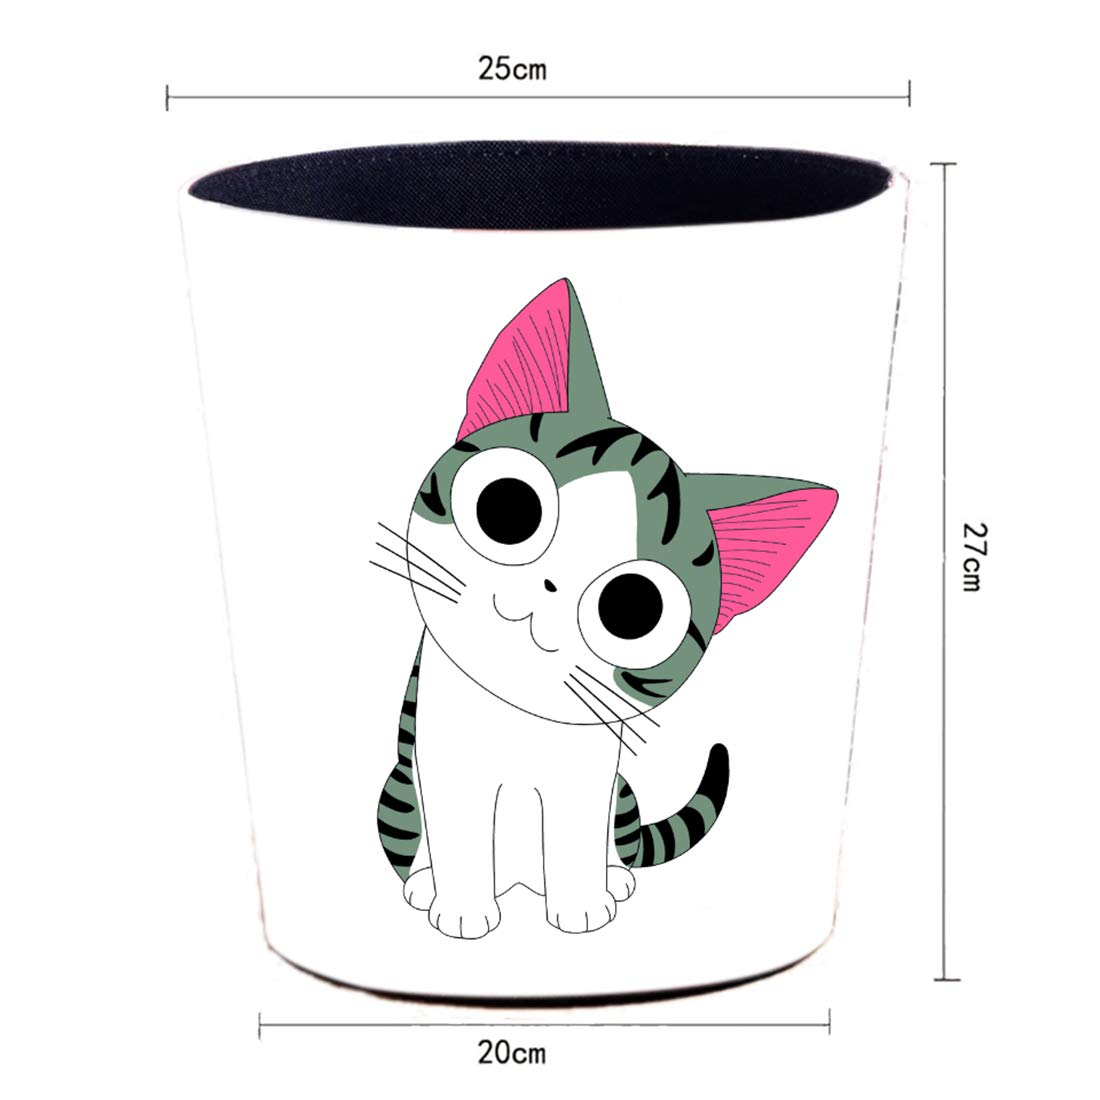 25 x 20 x 27cm OVERWELL Waterproof Waste Paper Bin 10L Waste Paper Basket for Bedroom Kitchen and Office Colorful Cat